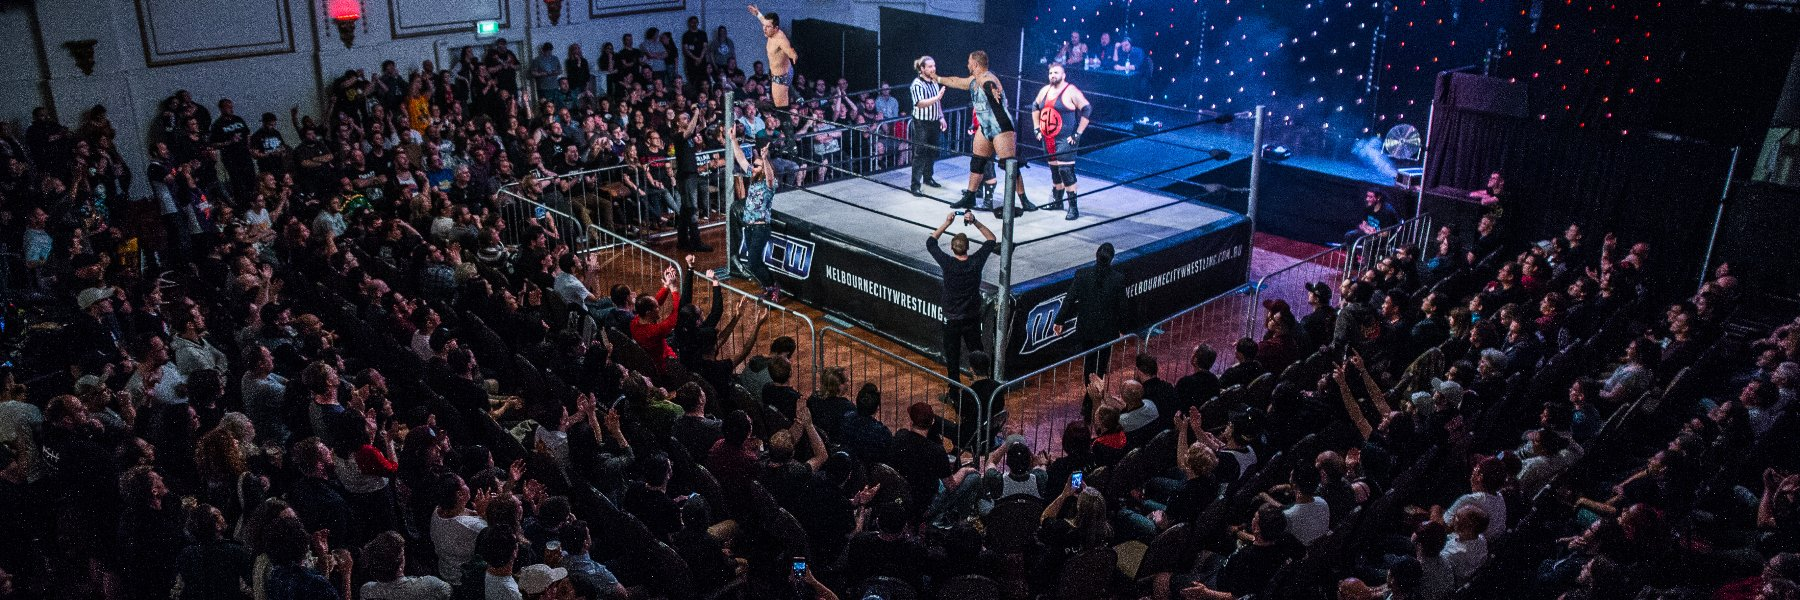 The best professional wrestling that Australia has to offer